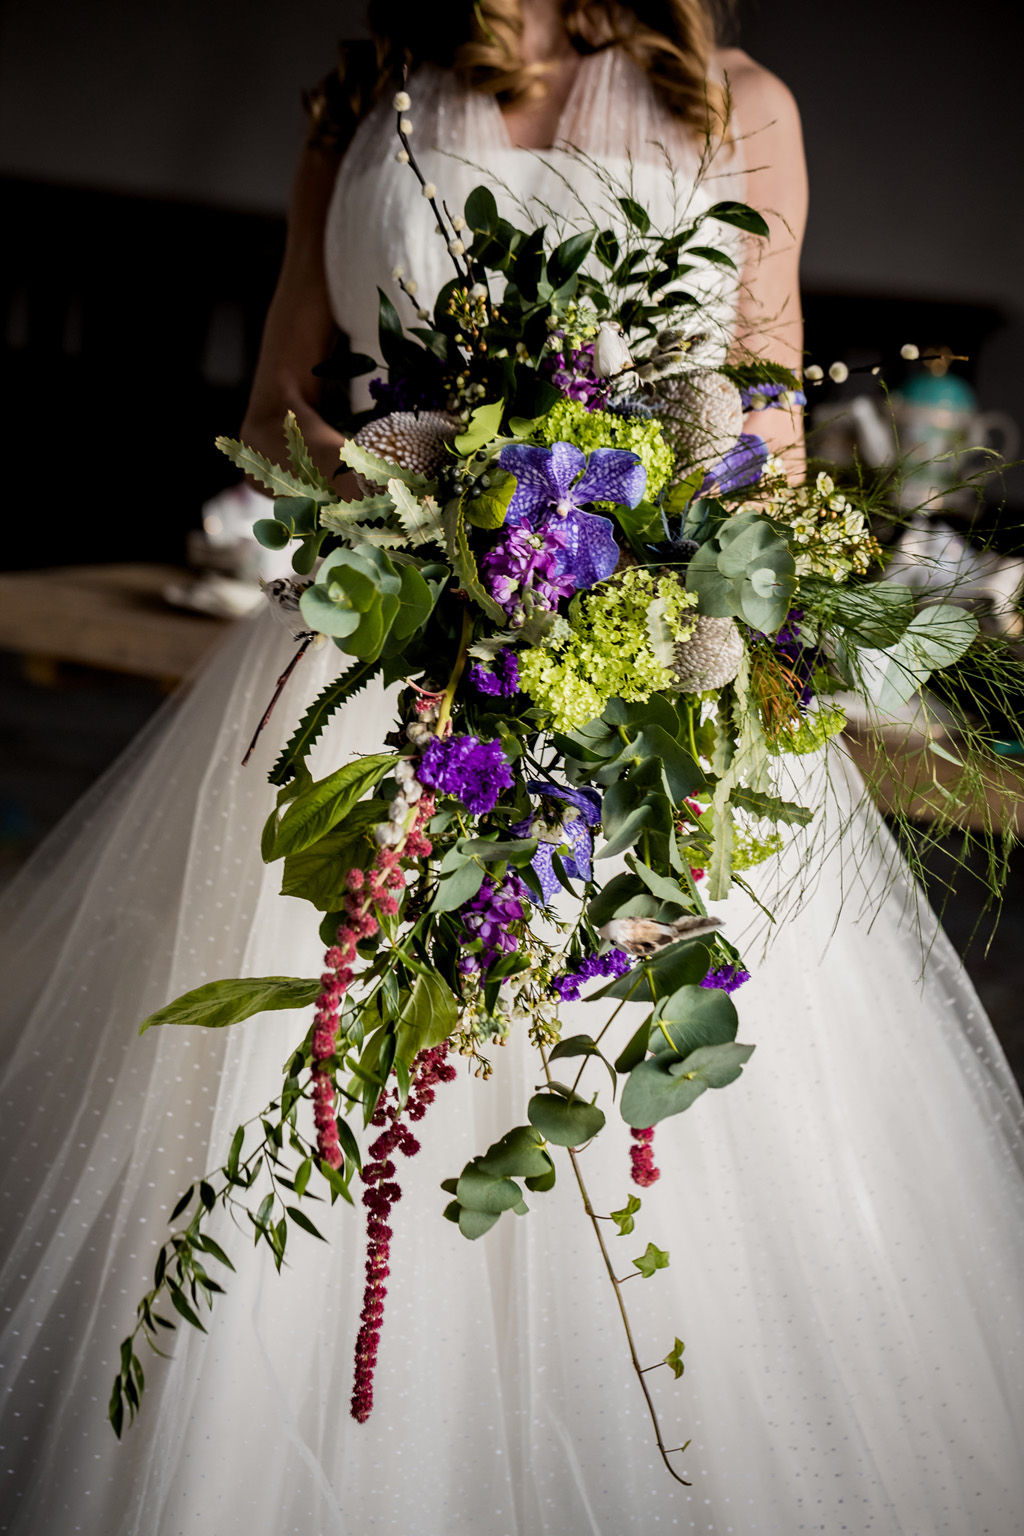 Trailing wedding bouquets for 2021 and 2022 by Fantail Designer Florist, image by Stu Ganderton Wedding Photography